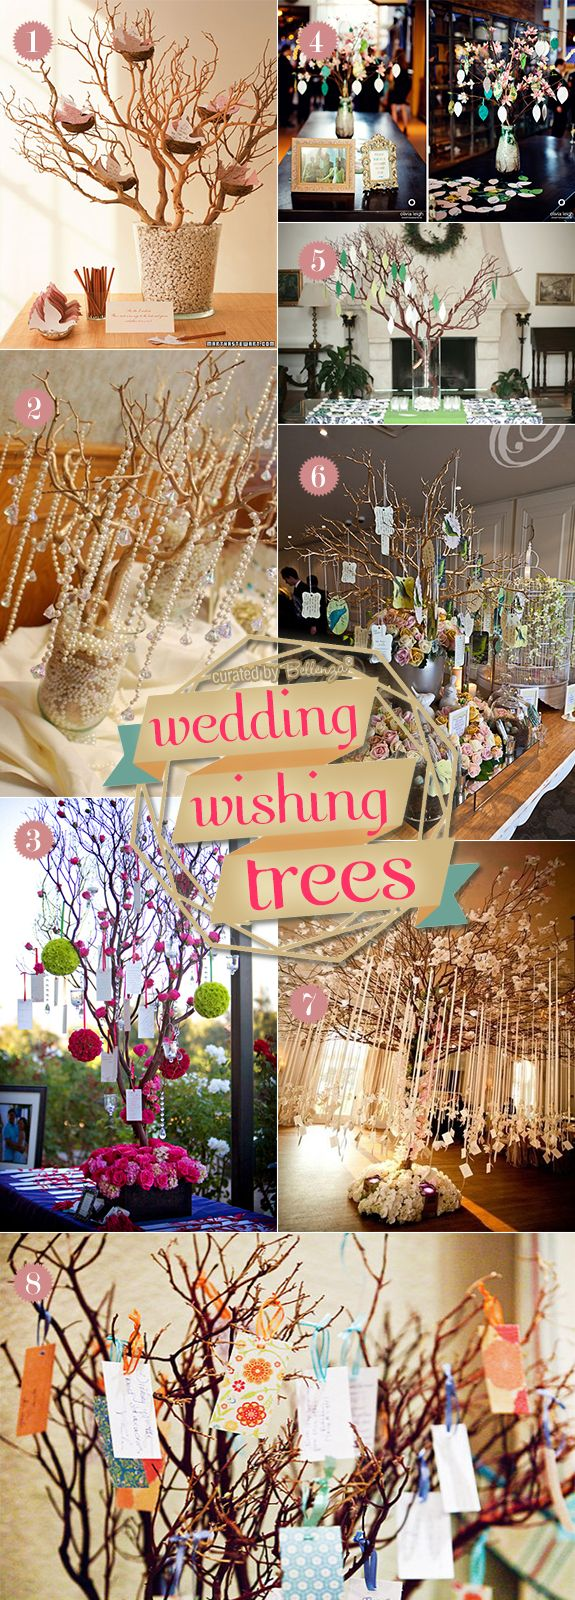 Wedding wish tree ideas from using real trees to tabletop varieties to faux branches in vases (see full post at the Bellenza Wedding Bistro) #weddingwishtrees #treedecorations #diyweddingtrees